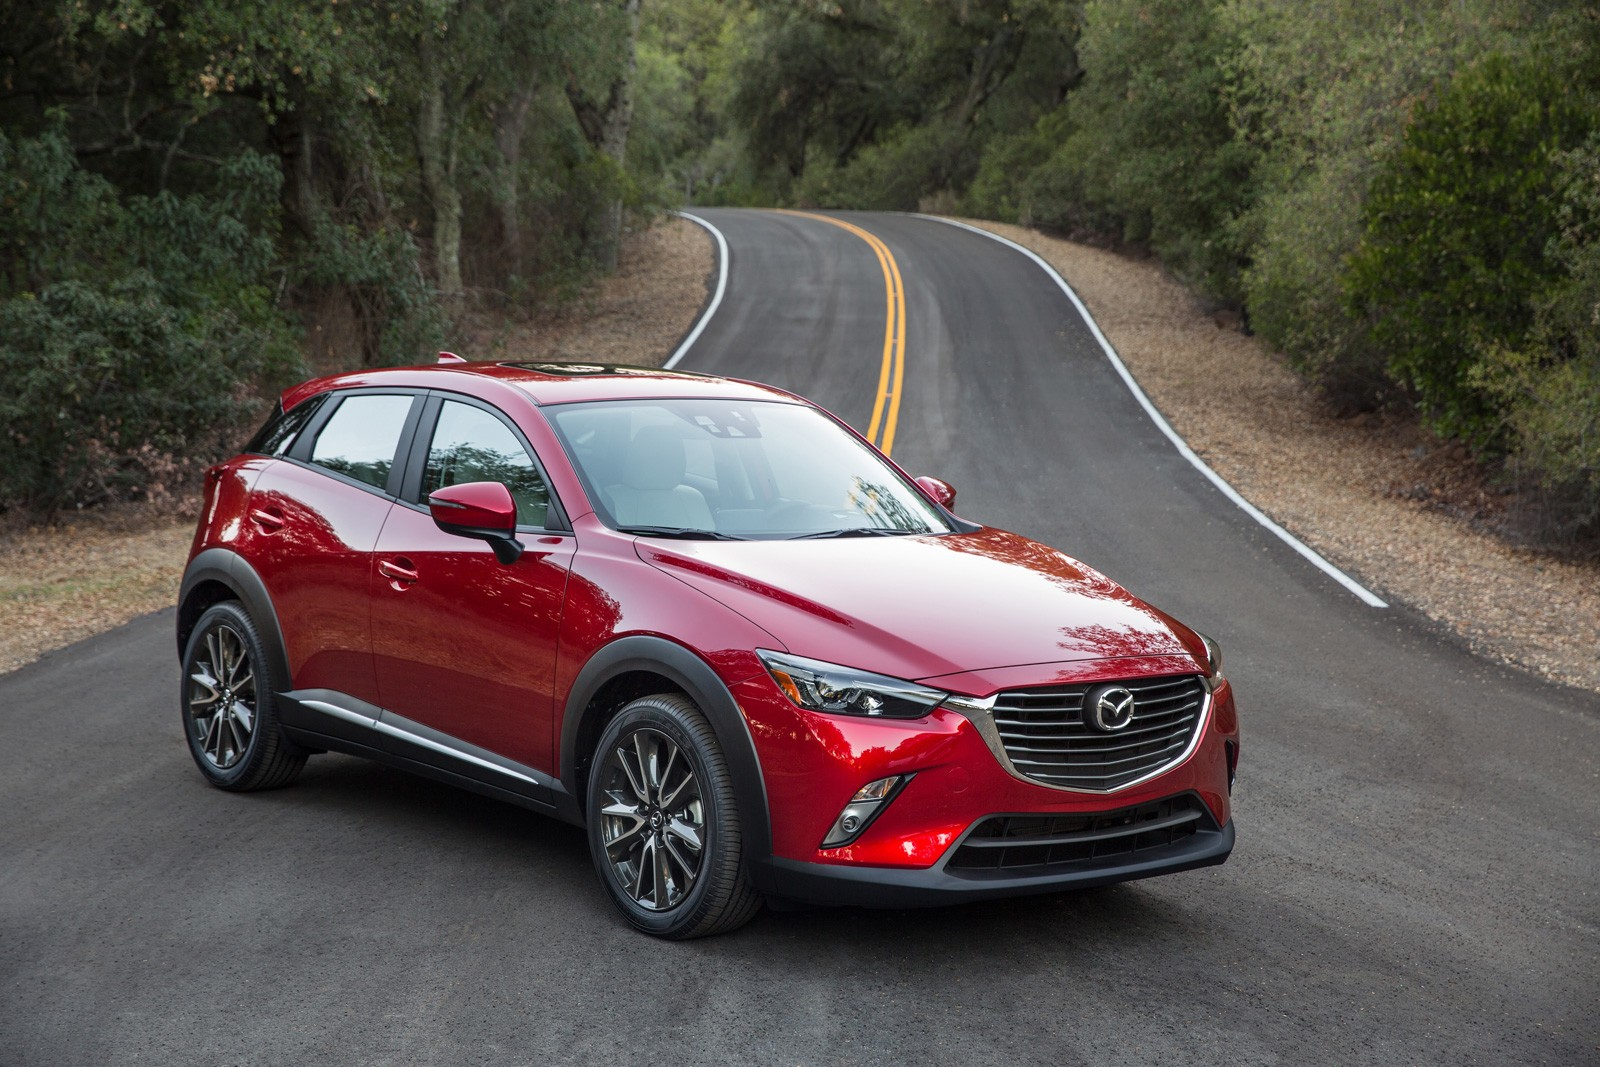 In Recent Years Mazda Has Been Impressing The Industry With Its Latest Models Especially Crossover And Suv Segment Compact Cx 3 May Be